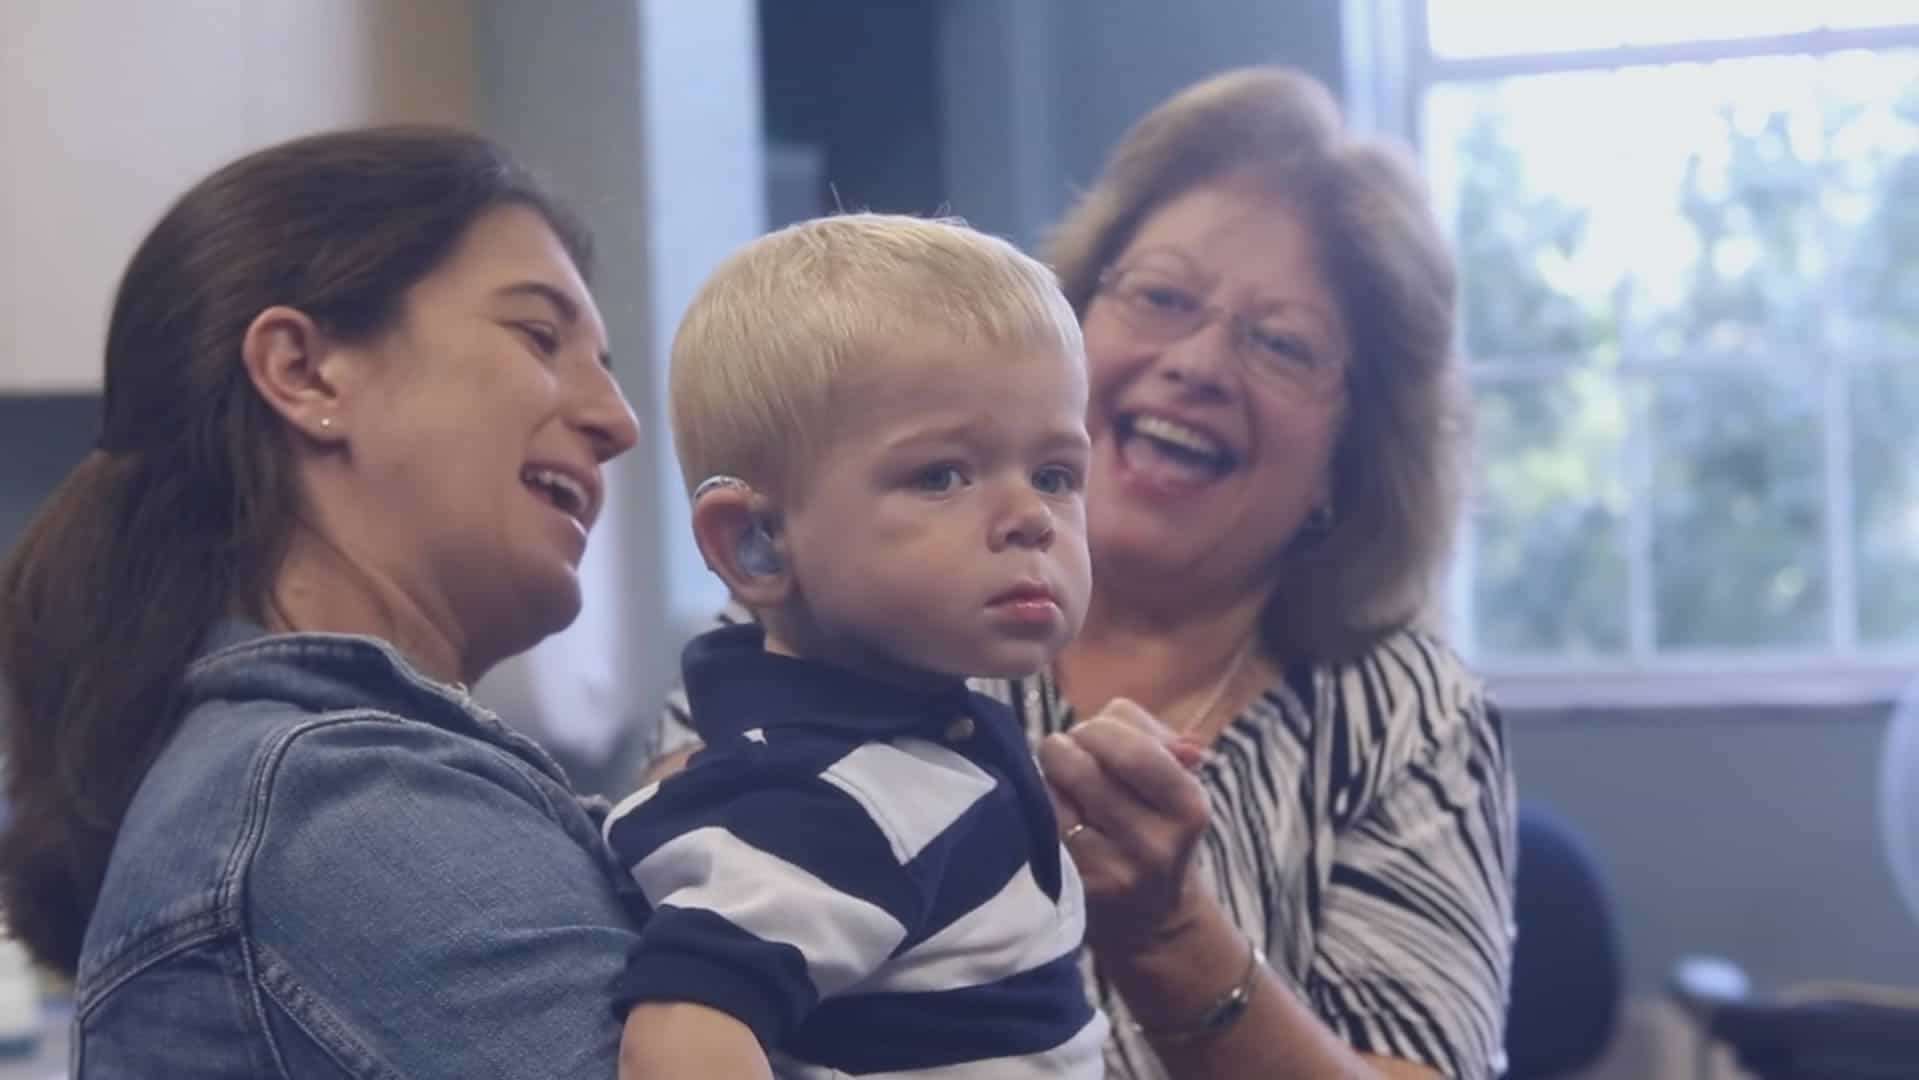 Video of a Cochlear Implant Activation